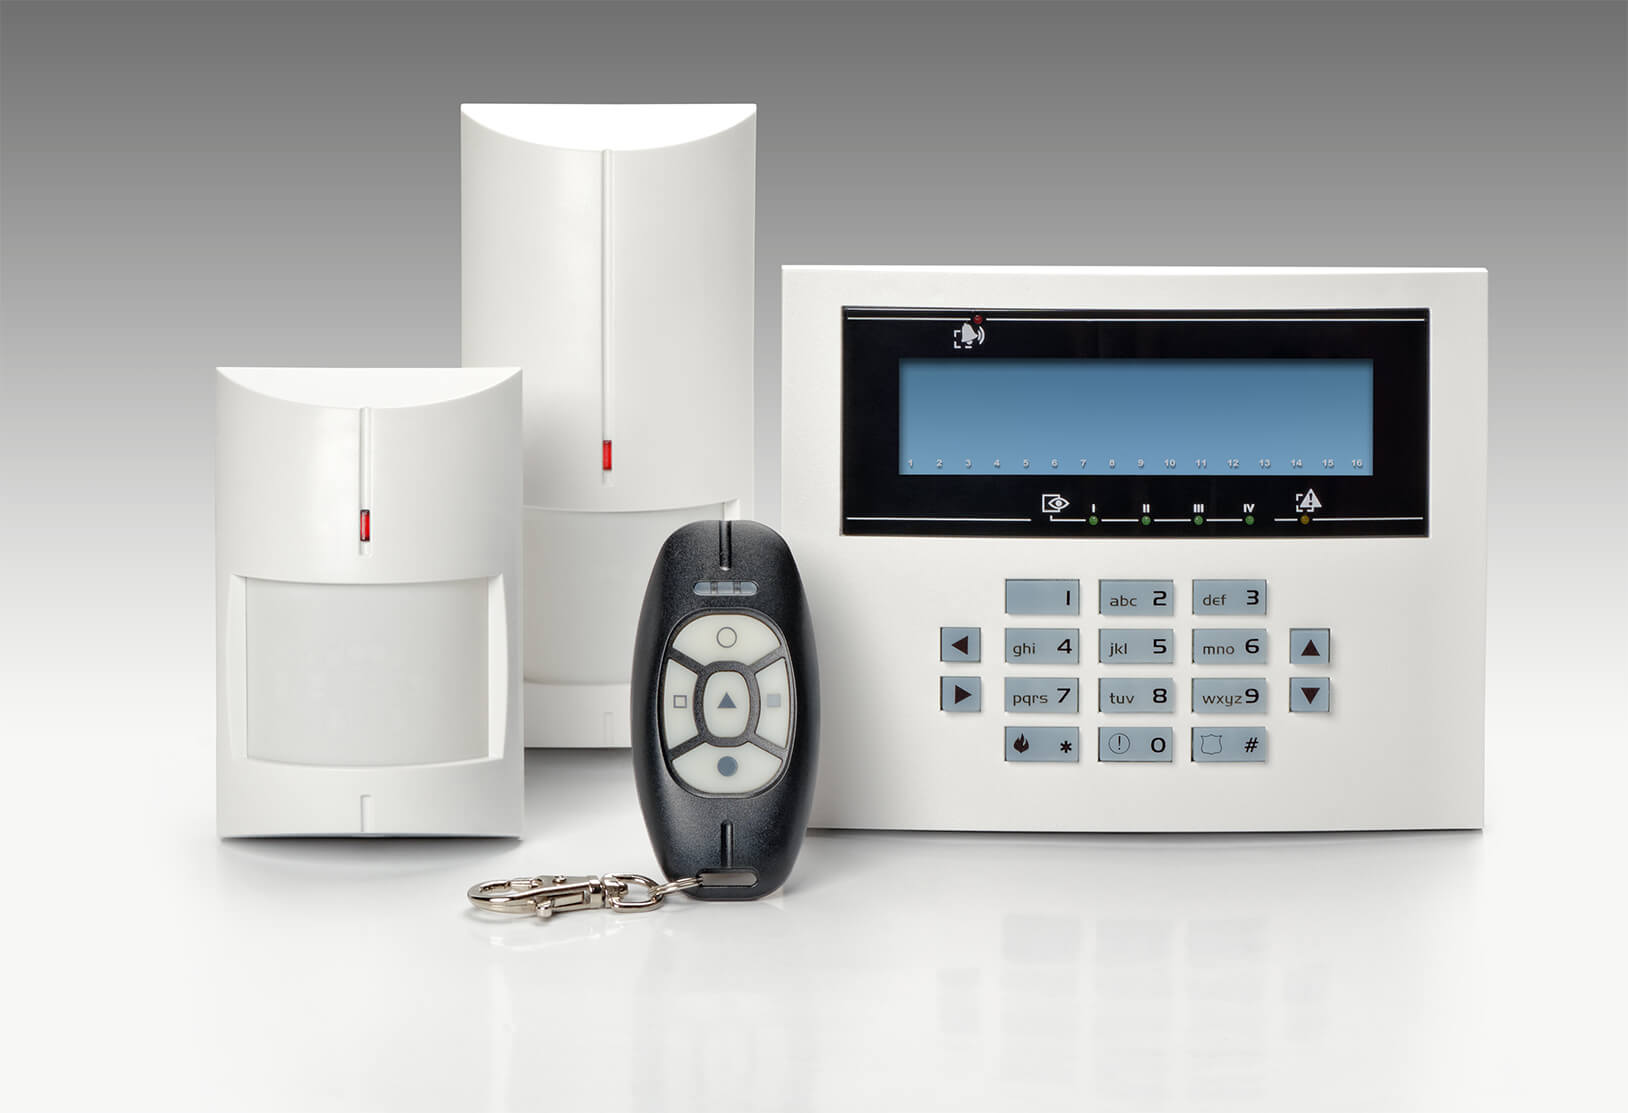 Burglar Alarms Repair in London - Local London alarm engineers.Call 02078872244 - See cost/price for burglar alarm repair and book your alarm engineer. No Hidden charges,No Contracts, Book as you need.Engineers on demand.All alarm makes repaired.Same day service ability.